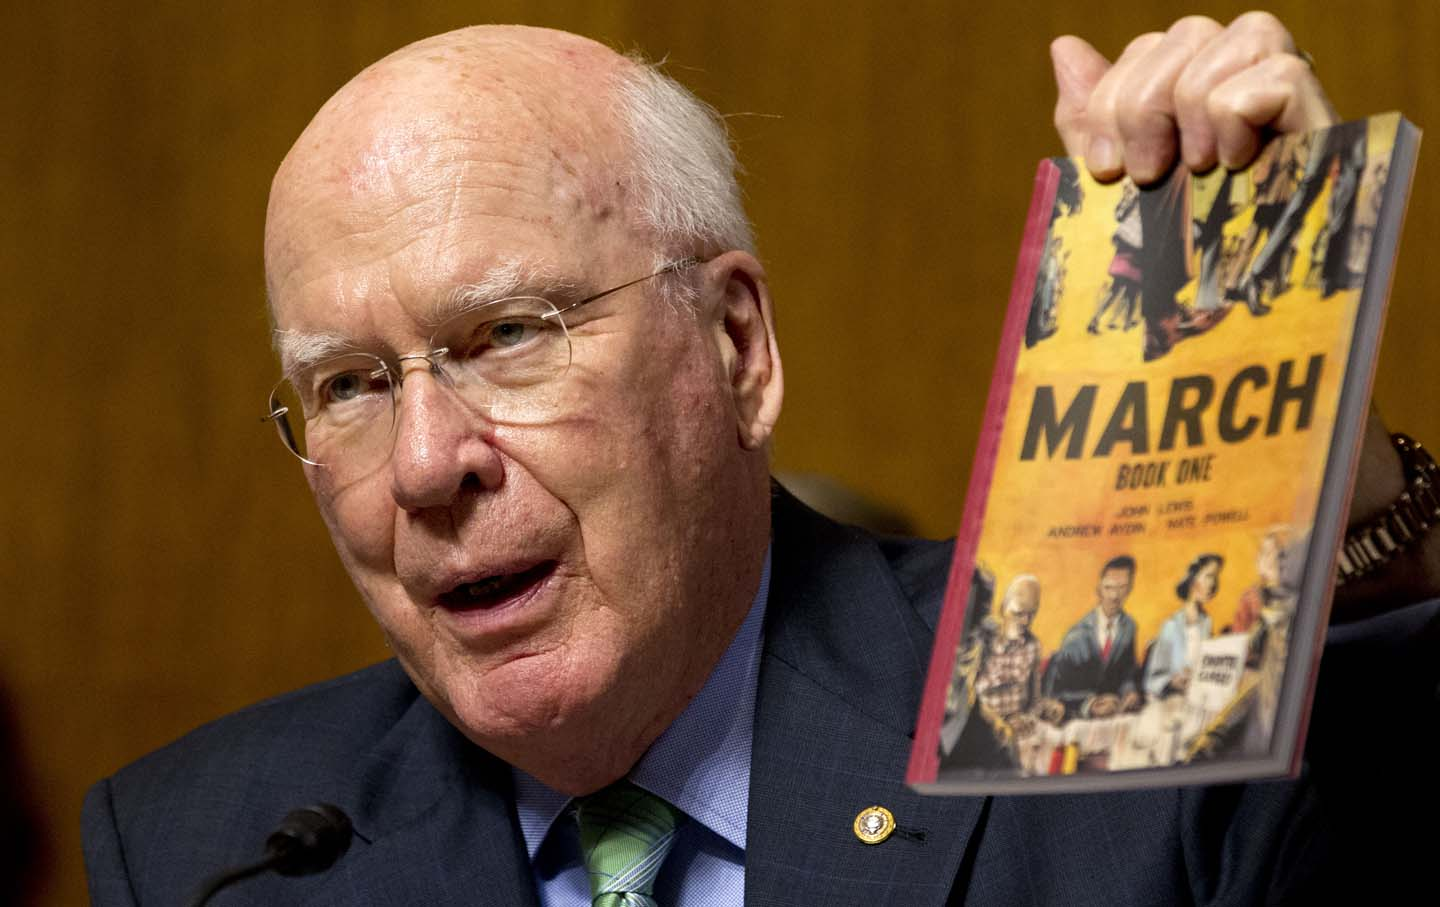 Washington Watch: Will Leahy Just Keep Truckin' On to Become History's Longest-Serving Senator?